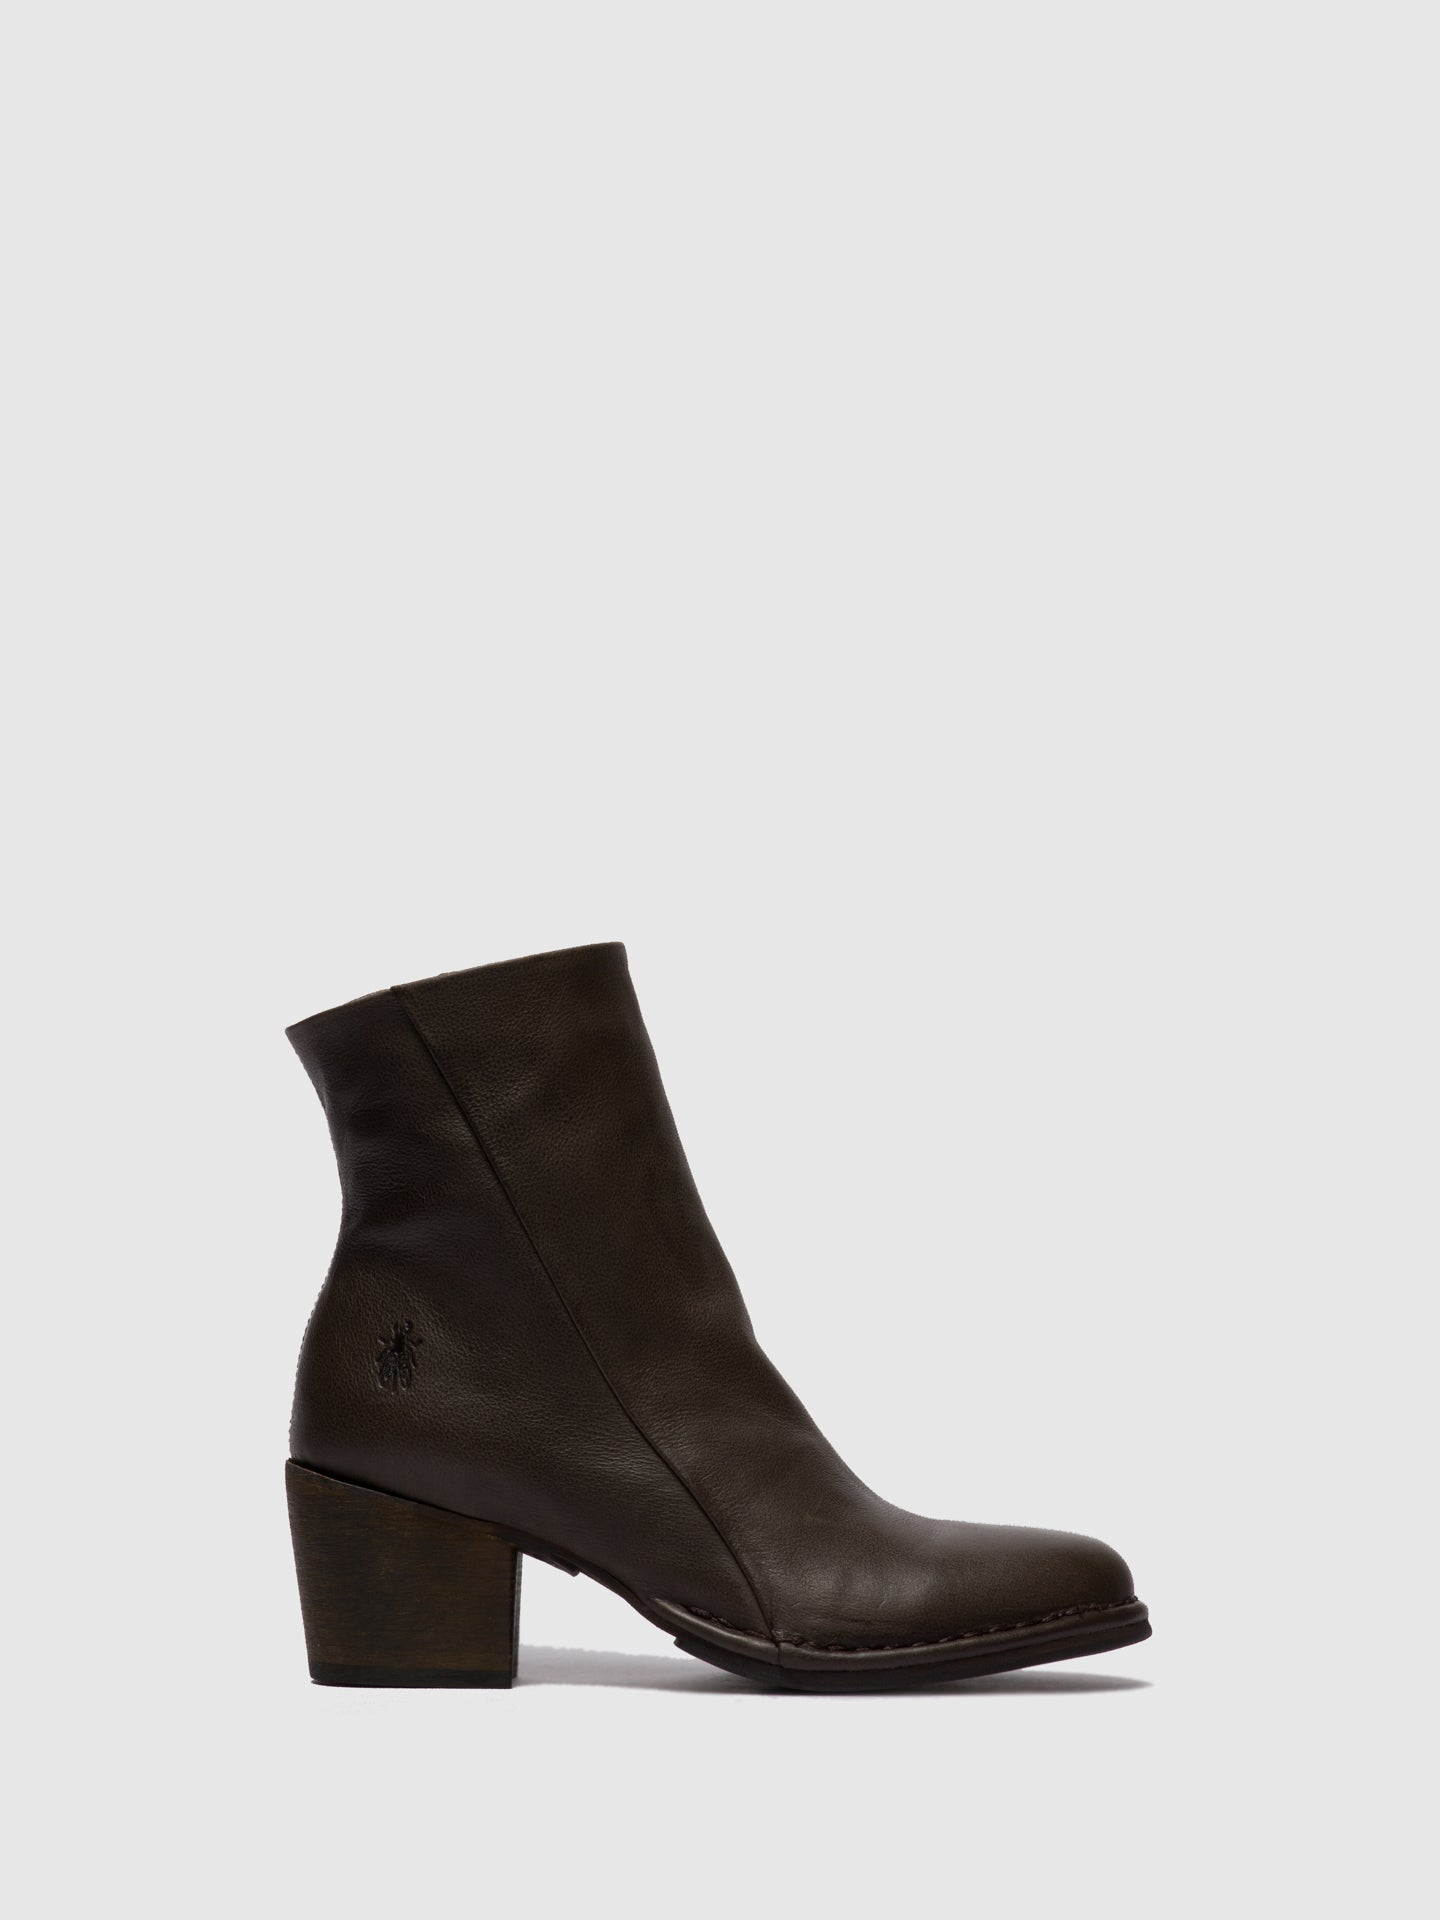 Fly London Zip Up Ankle Boots LUPE233FLY VERONA GROUND